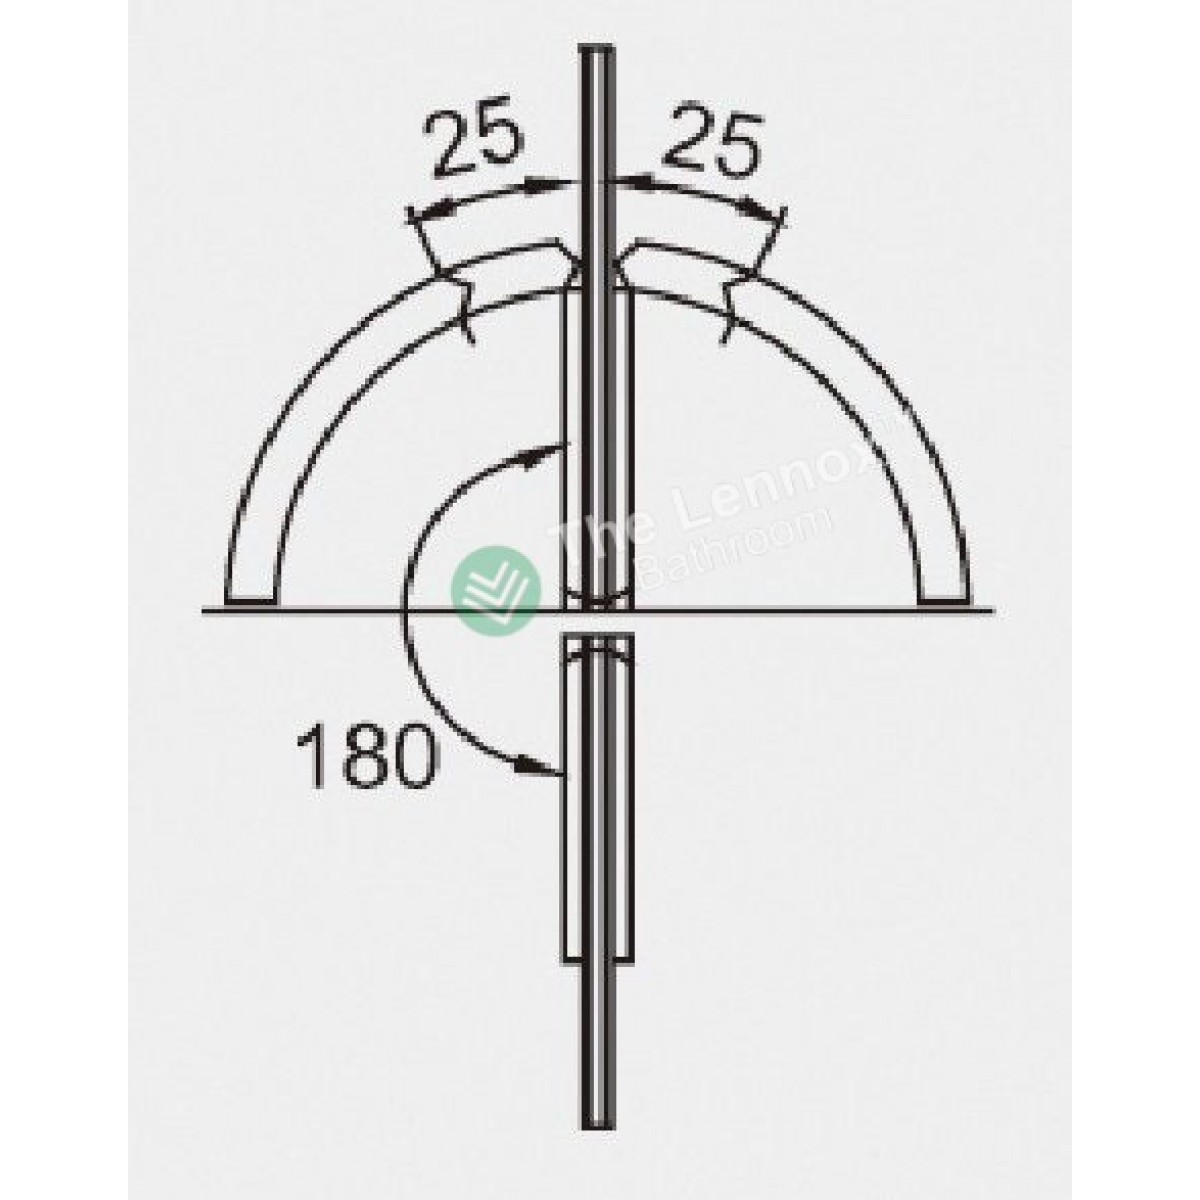 Glass to glass door hinges - Shower Door Hinges 180 Degree Glass To Glass